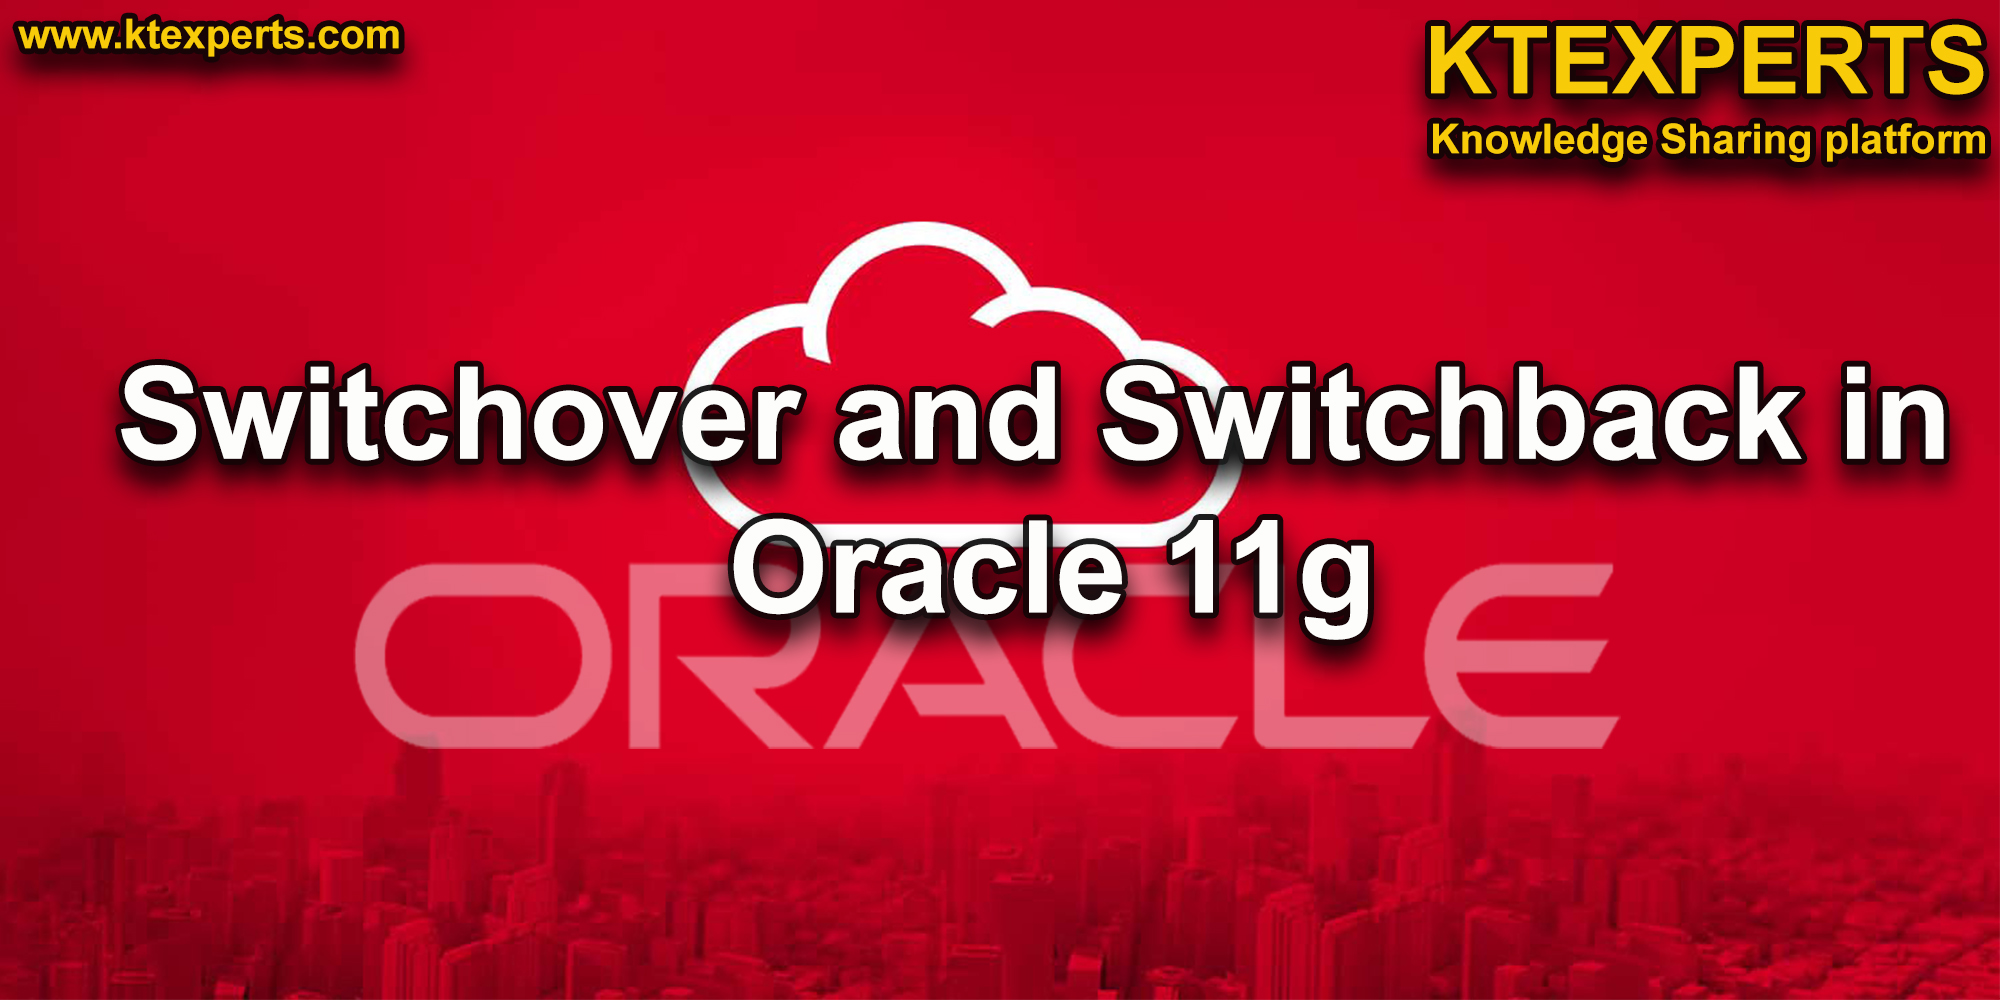 Switchover and Switchback in Oracle 11g